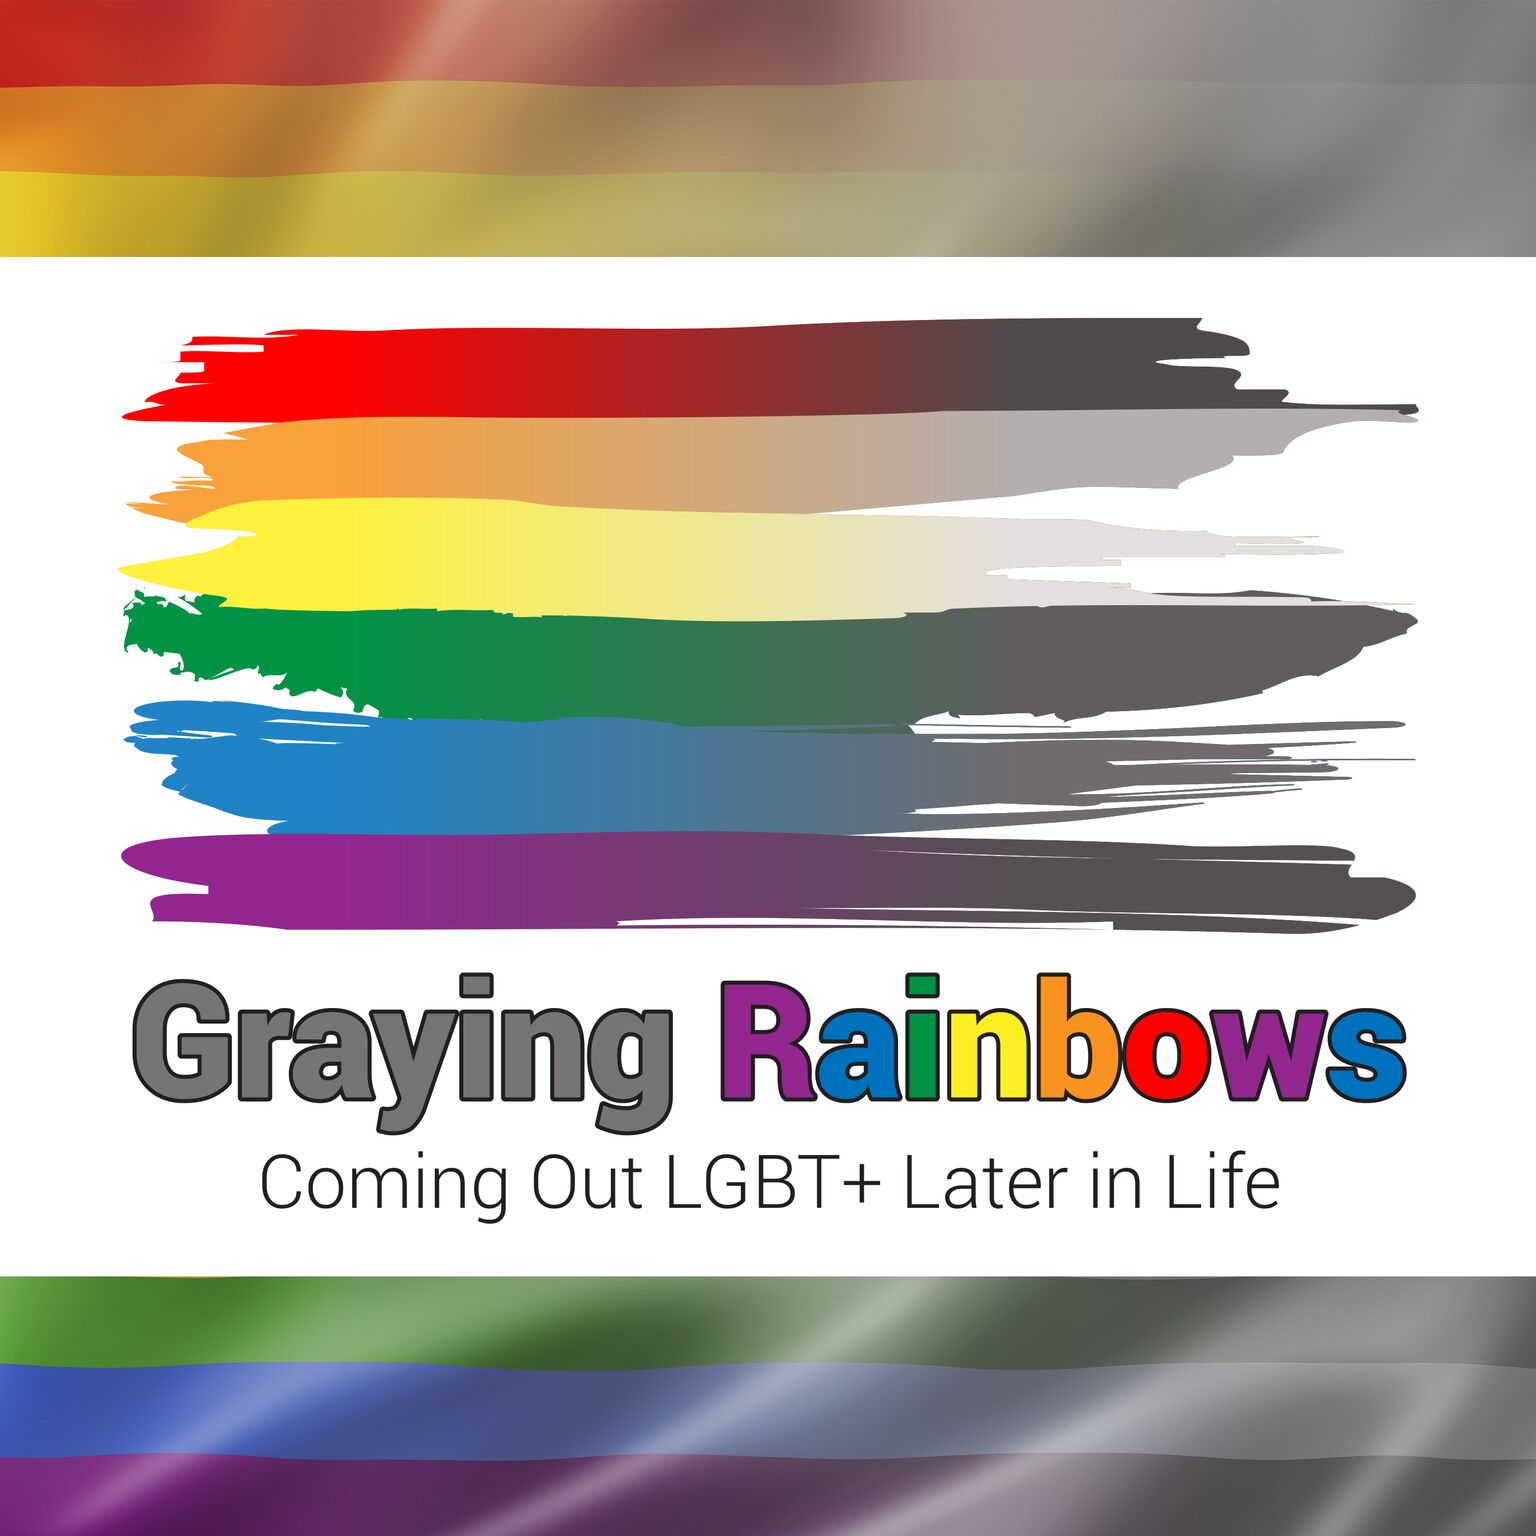 GrayingRainbows